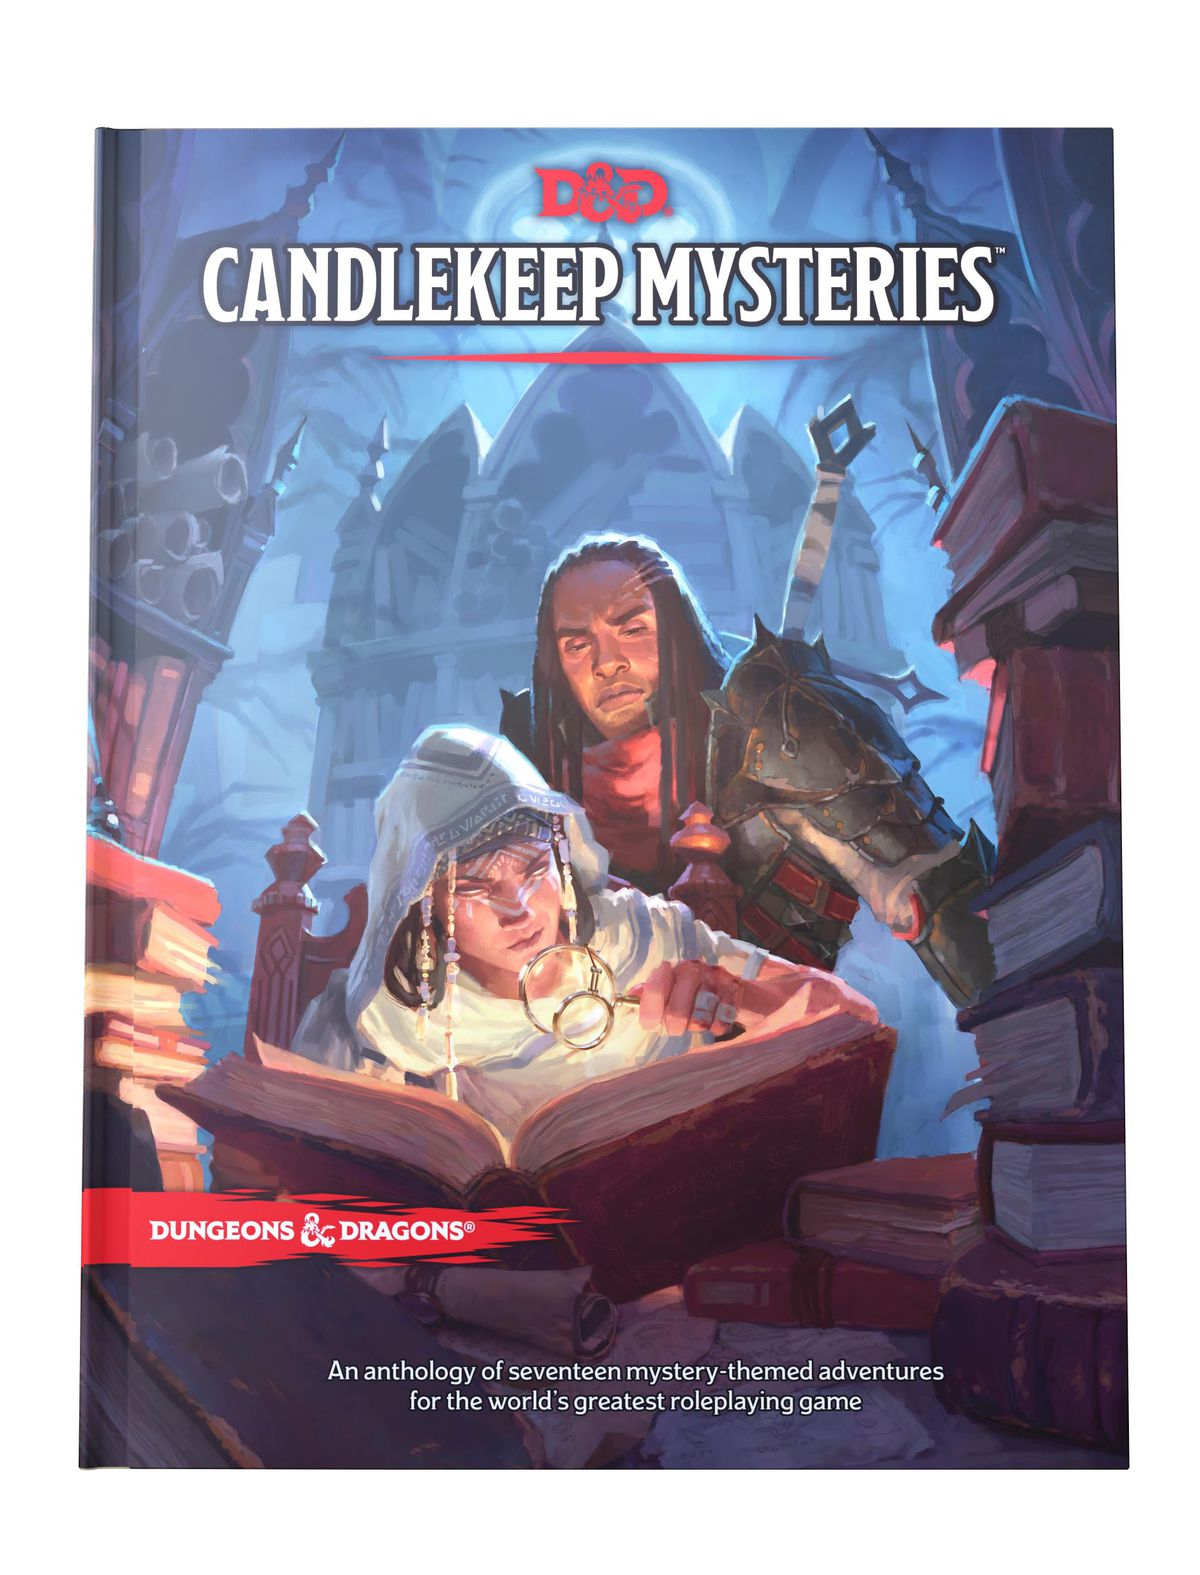 Adventurers pore over a book with a magnifying glass deep withing the dim confines of Candlekeep, in Baldur's Gate.